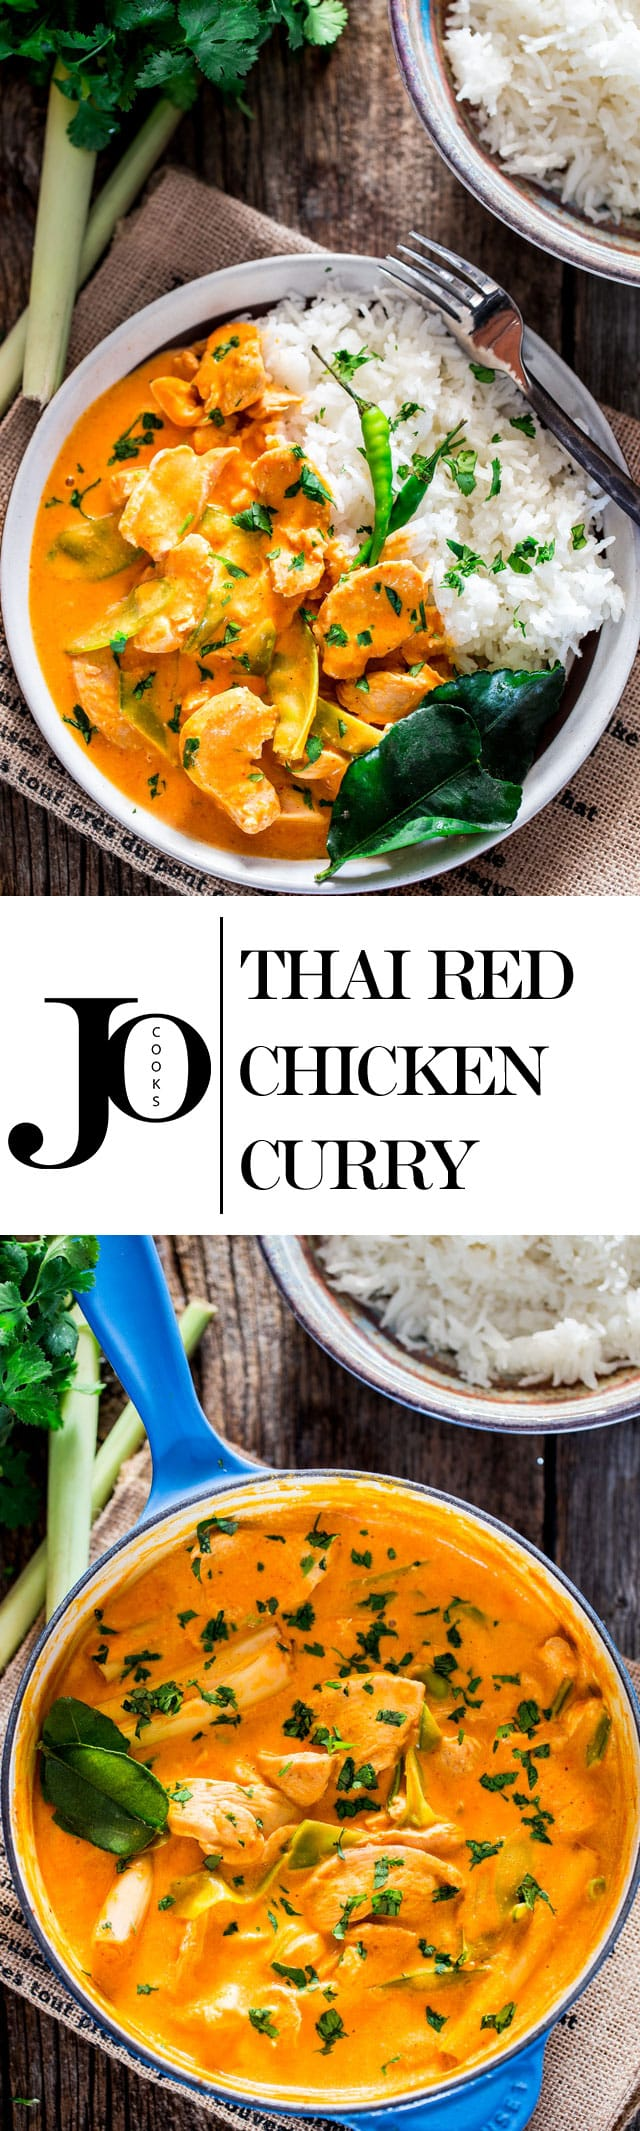 This Thai Red Chicken Curry is incredibly delicious, so easy to make with bite size chicken pieces, snow peas and simmered in a red curry and coconut milk sauce. Thai cooking in under 30 minutes and all in one pot! #thai #chickencurry